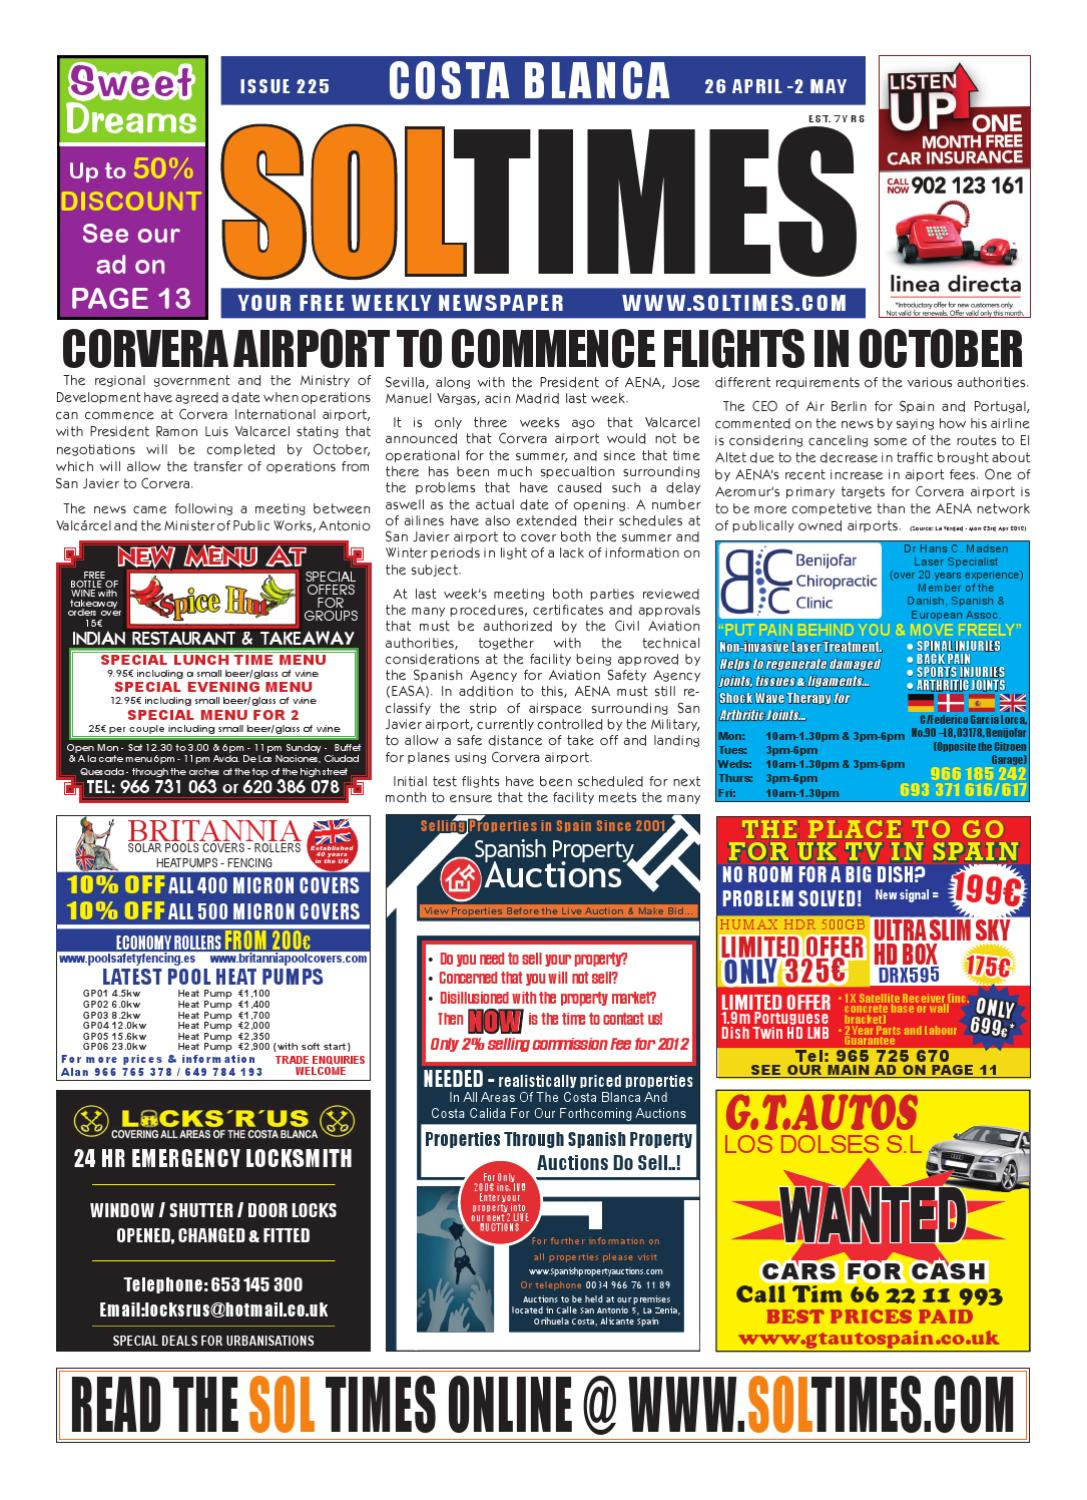 Sol Times Newspaper Issue 225 Costa Blanca Edition By Nigel Judson  # Muebles Dous Murcia